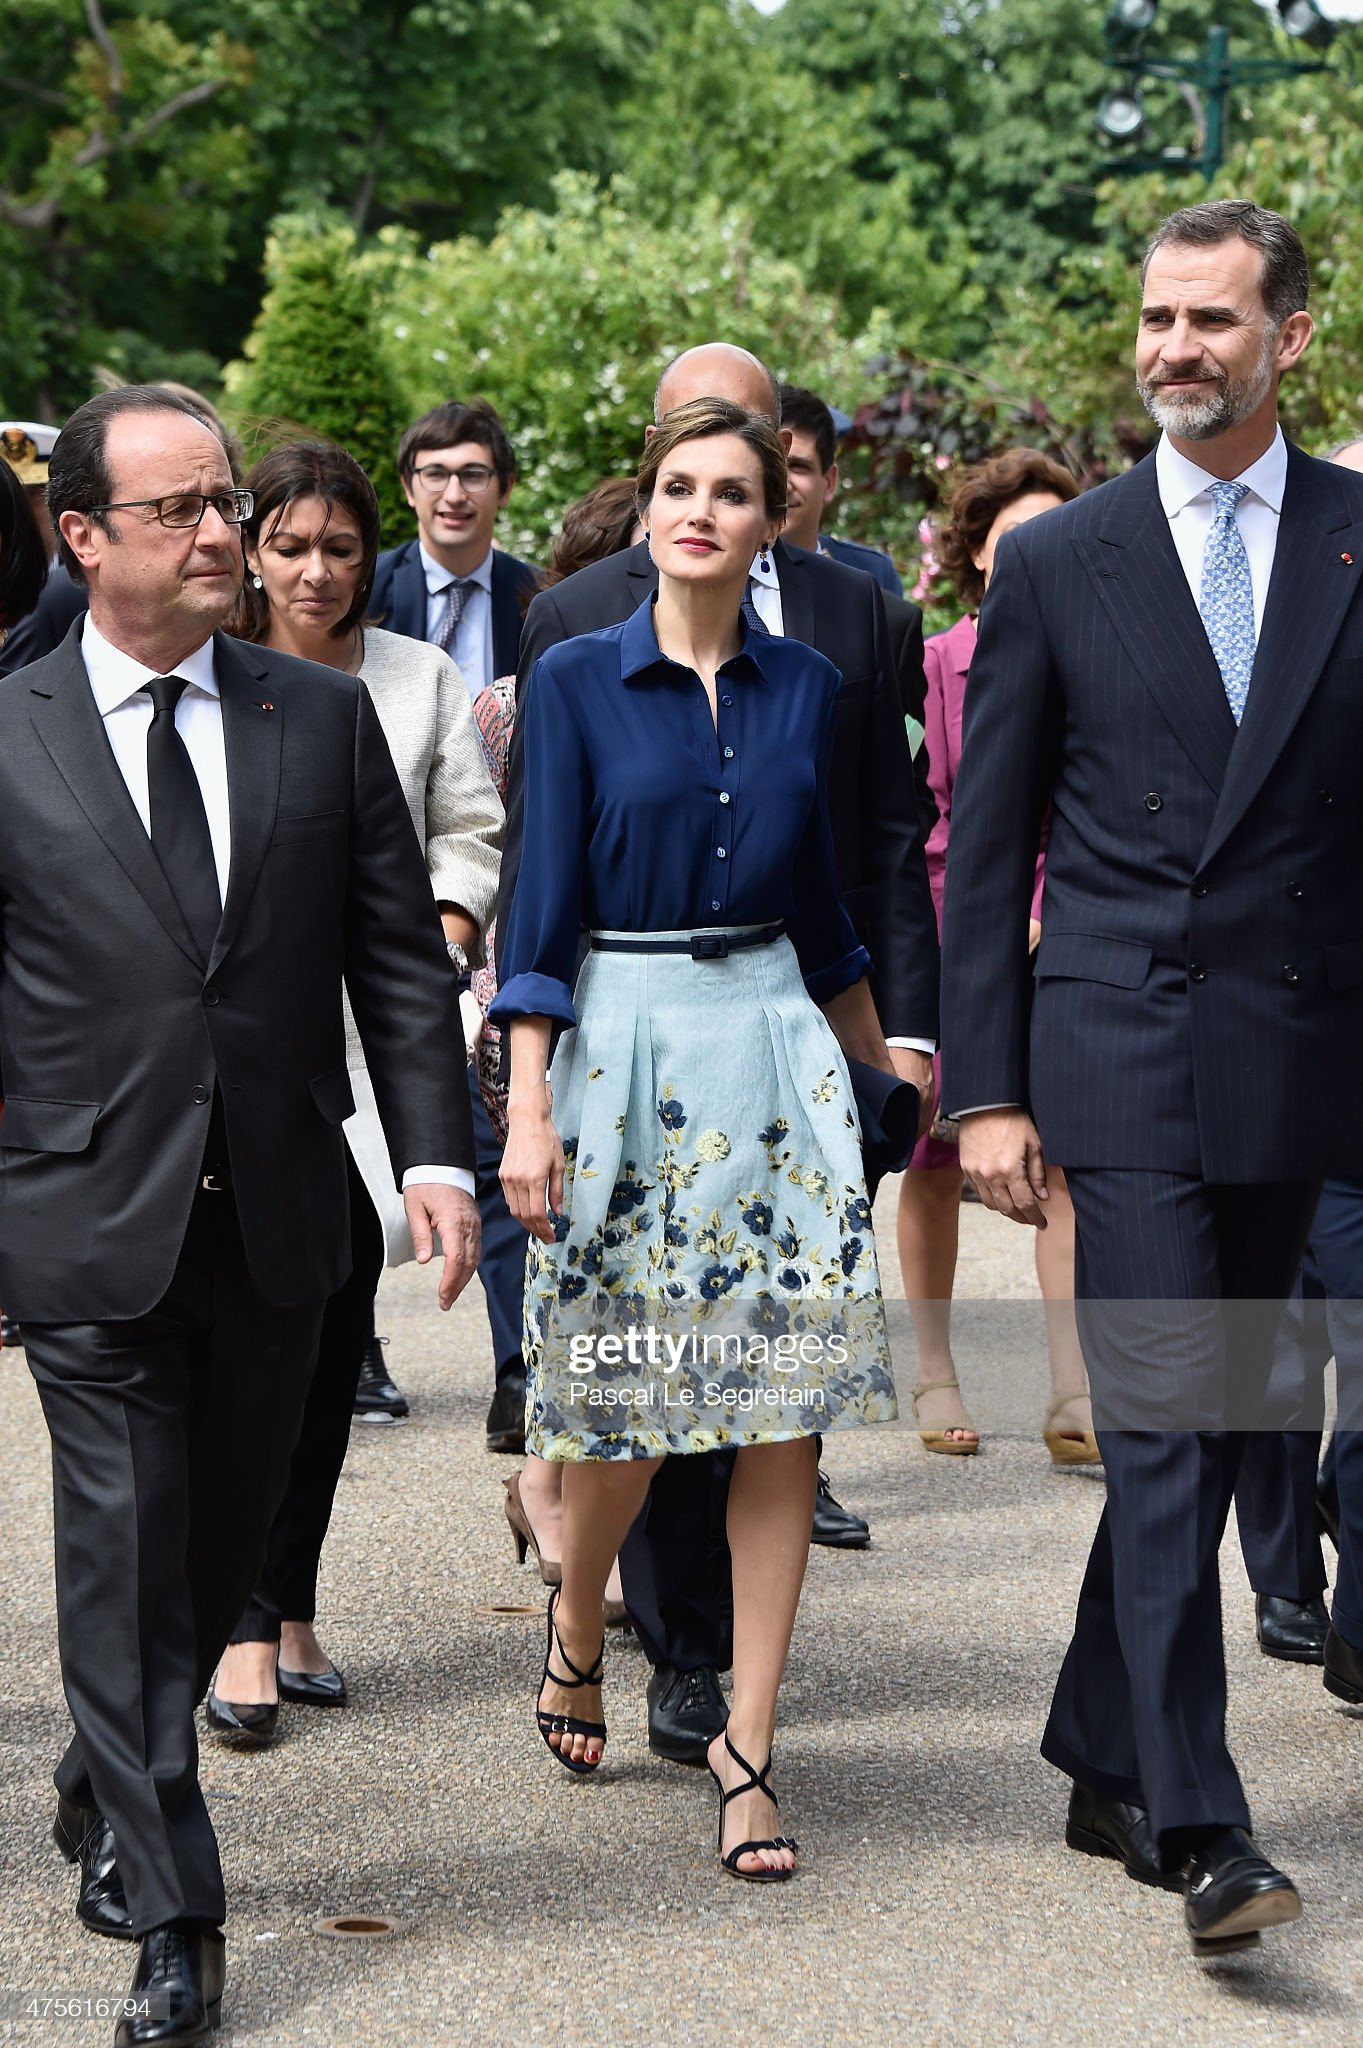 frecnh-president-francois-hollande-queen-letizia-of-spain-and-king-picture-id475616794